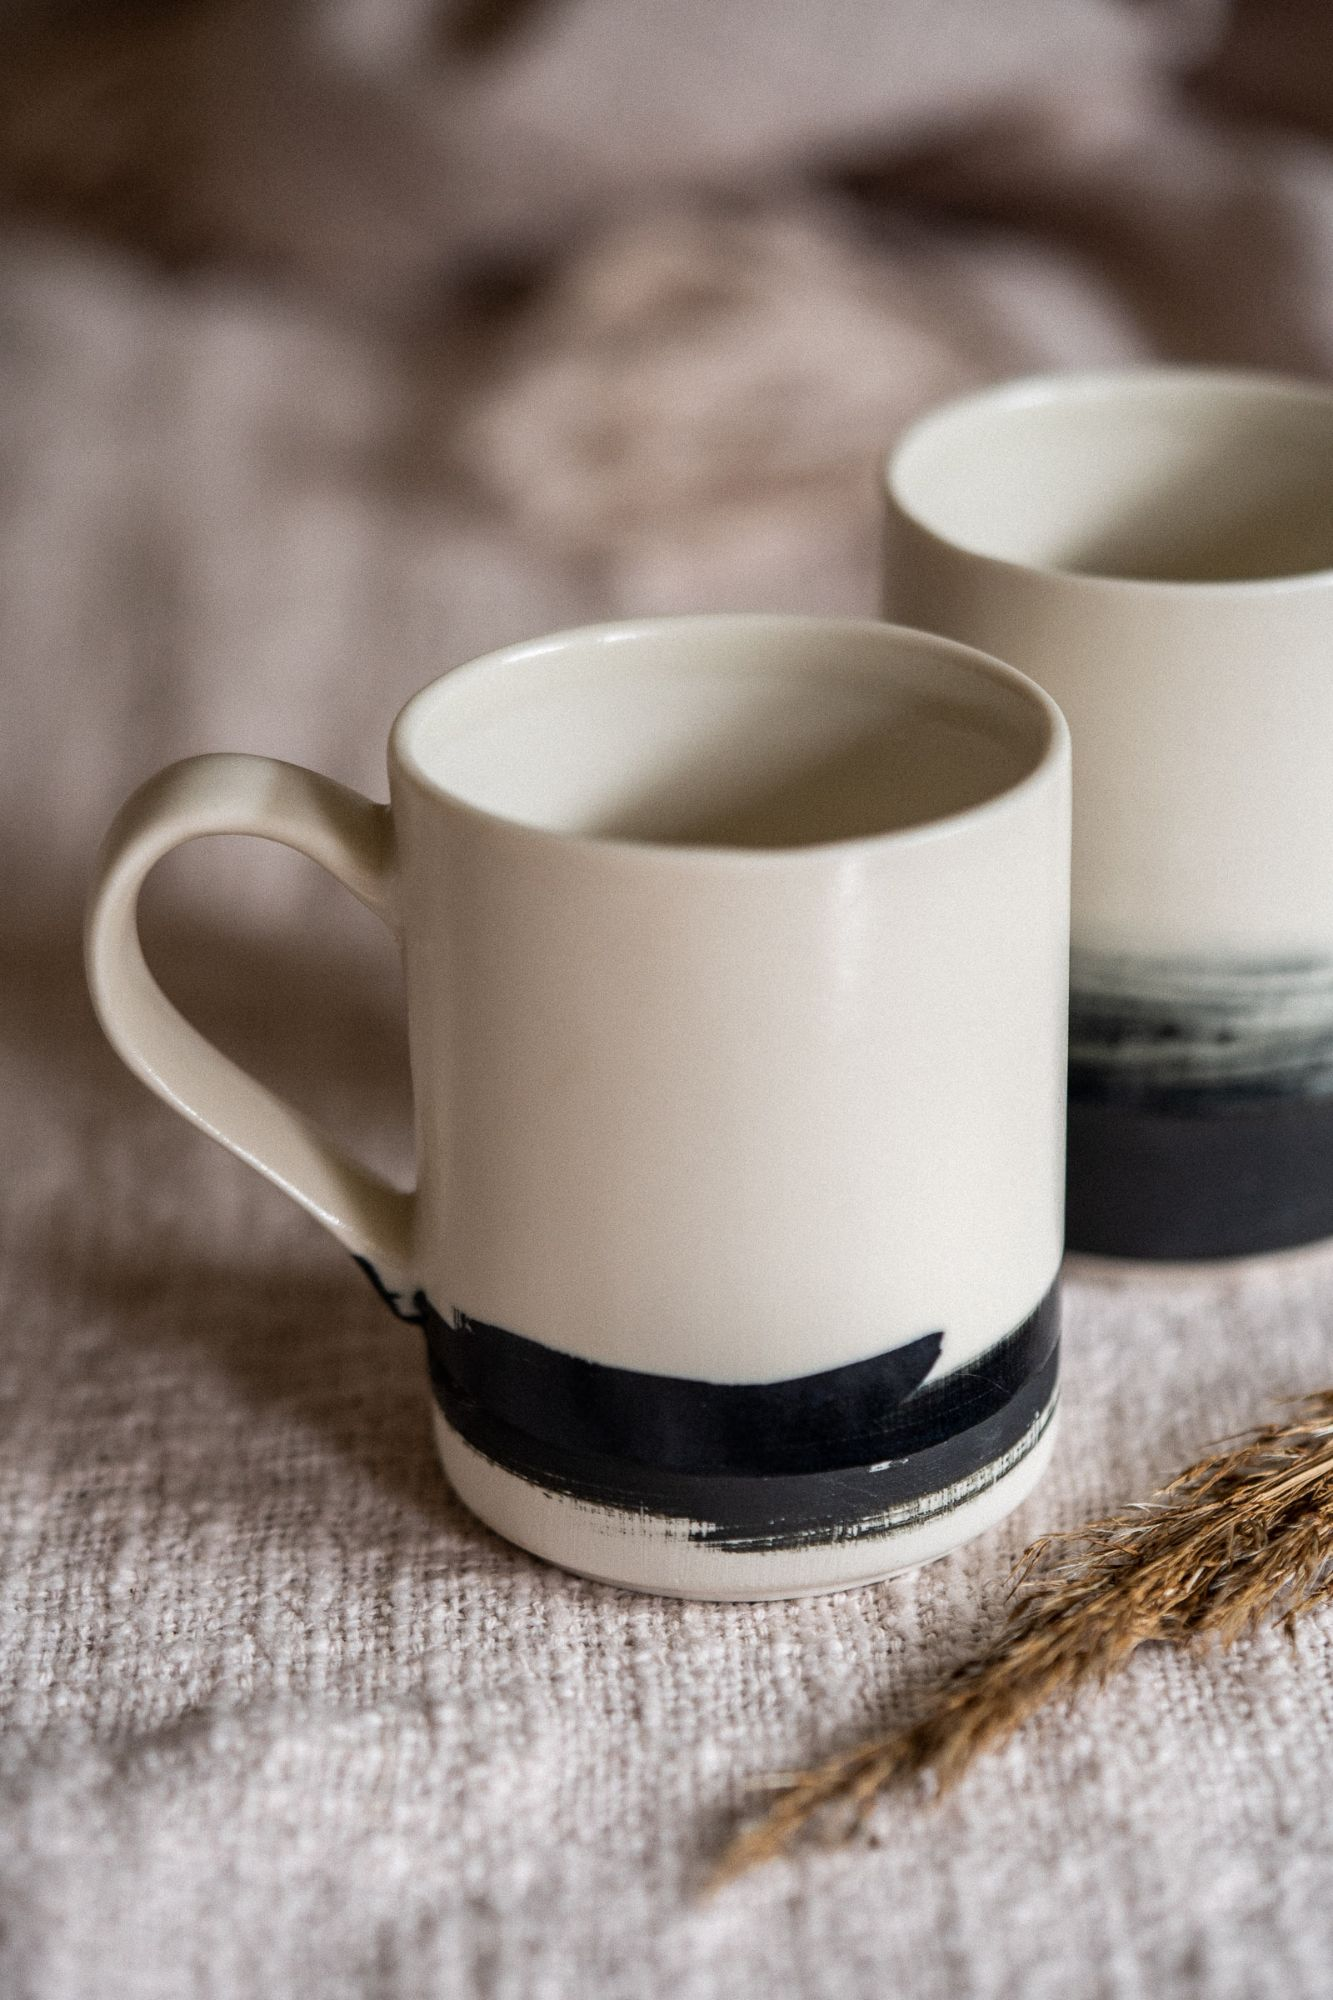 Cream mug with black brush mark